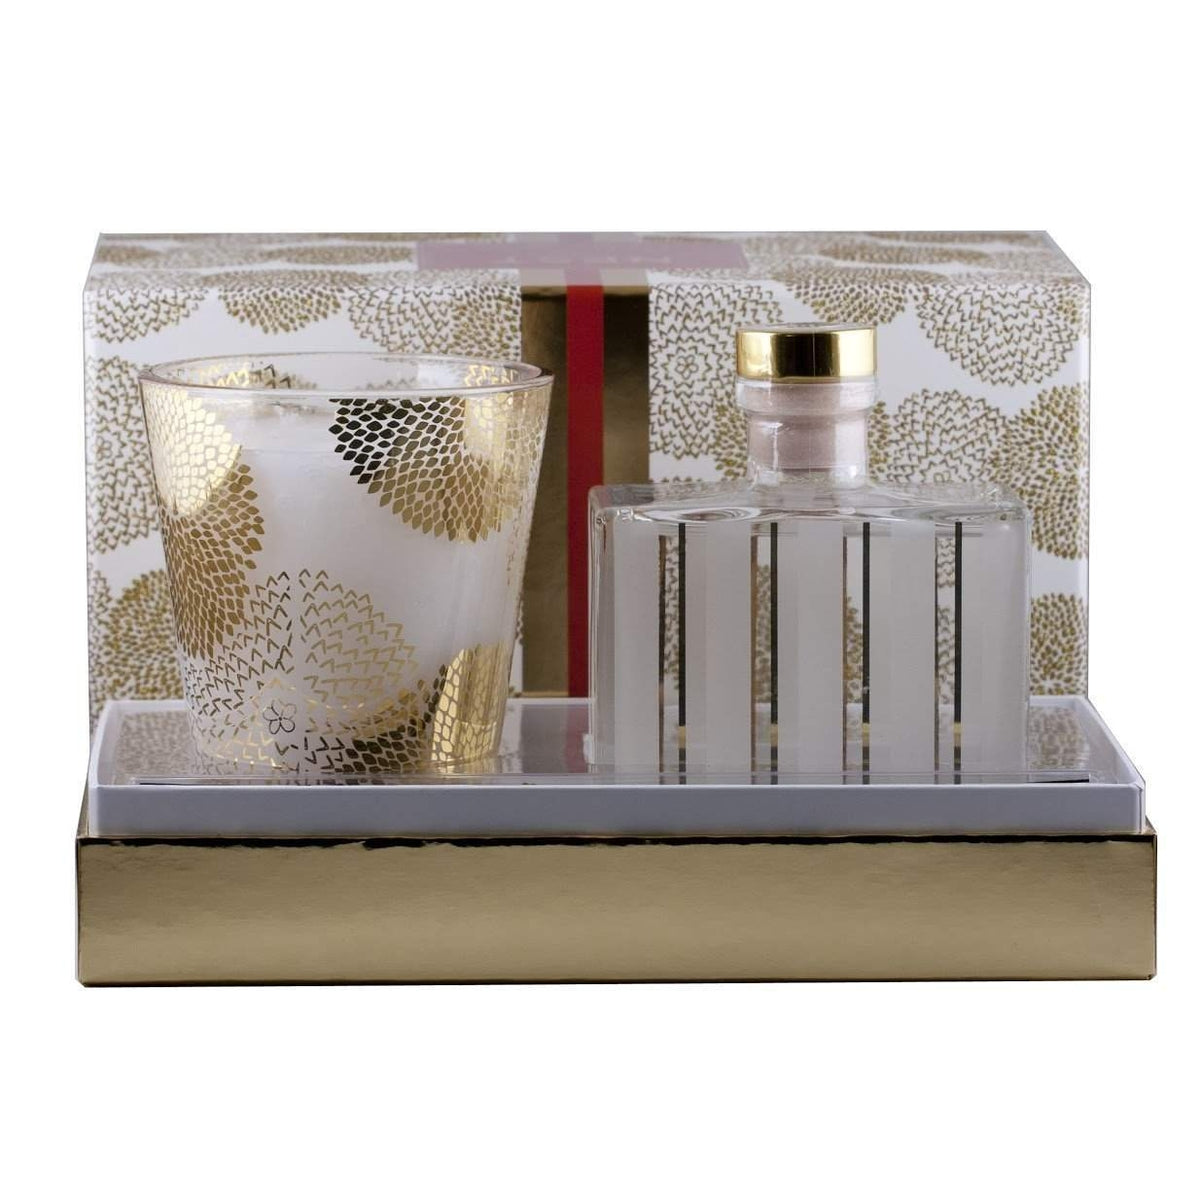 Nest Fragrances Birchwood Classic Candle and Diffuser Gift Set-Nest Fragrances-Oak Manor Fragrances